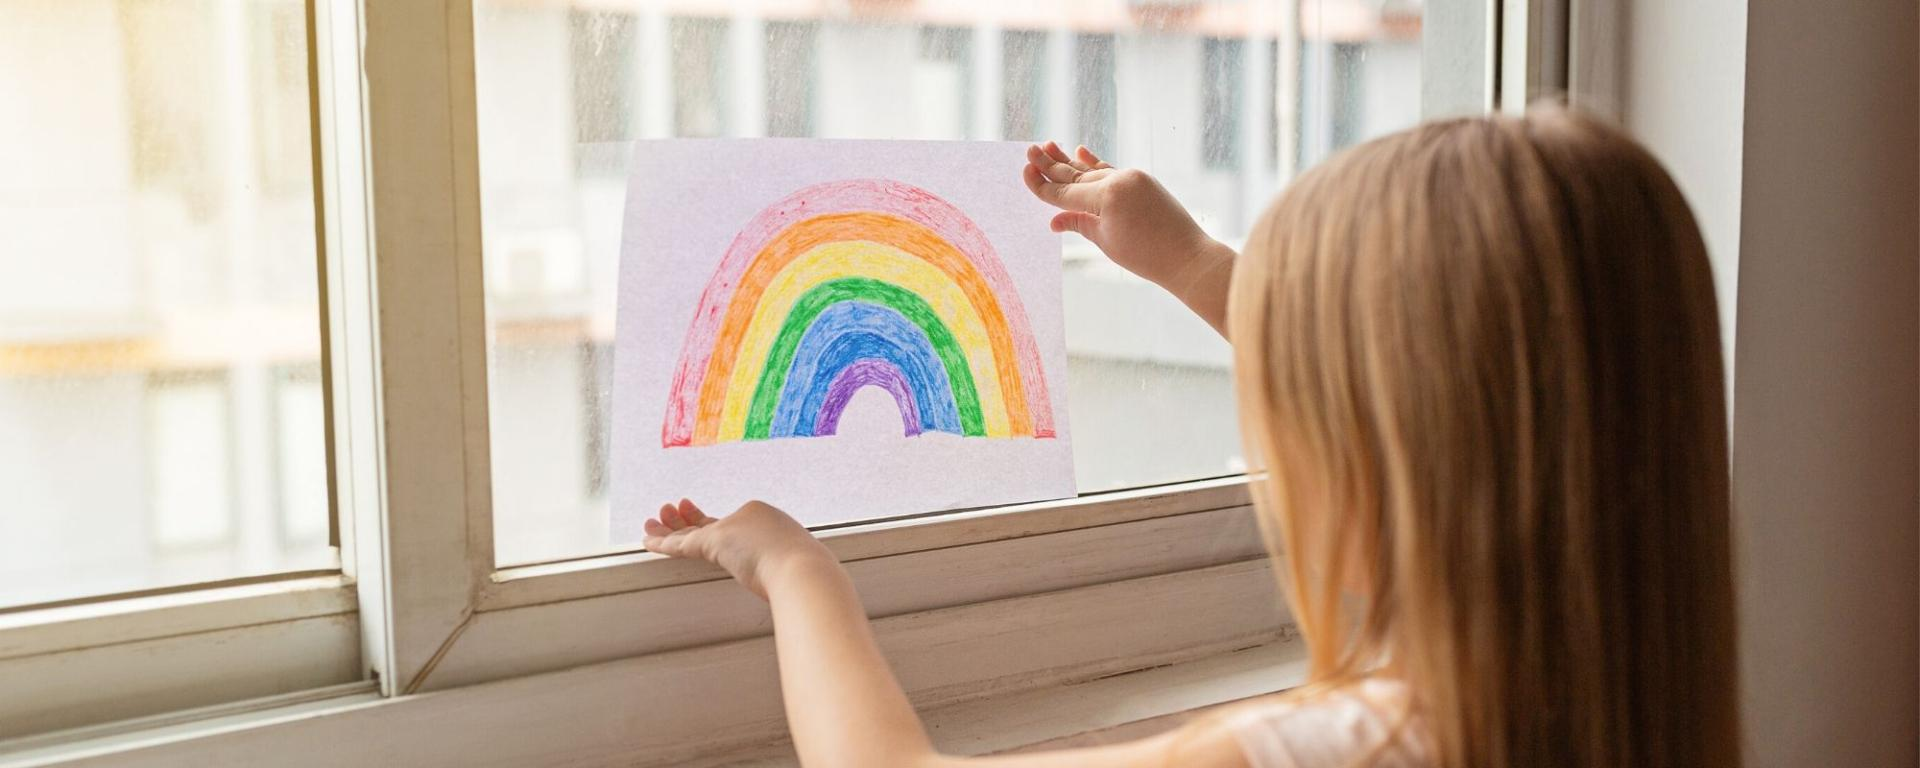 Girl Putting Her Rainbow Picture In The Window.jpeg